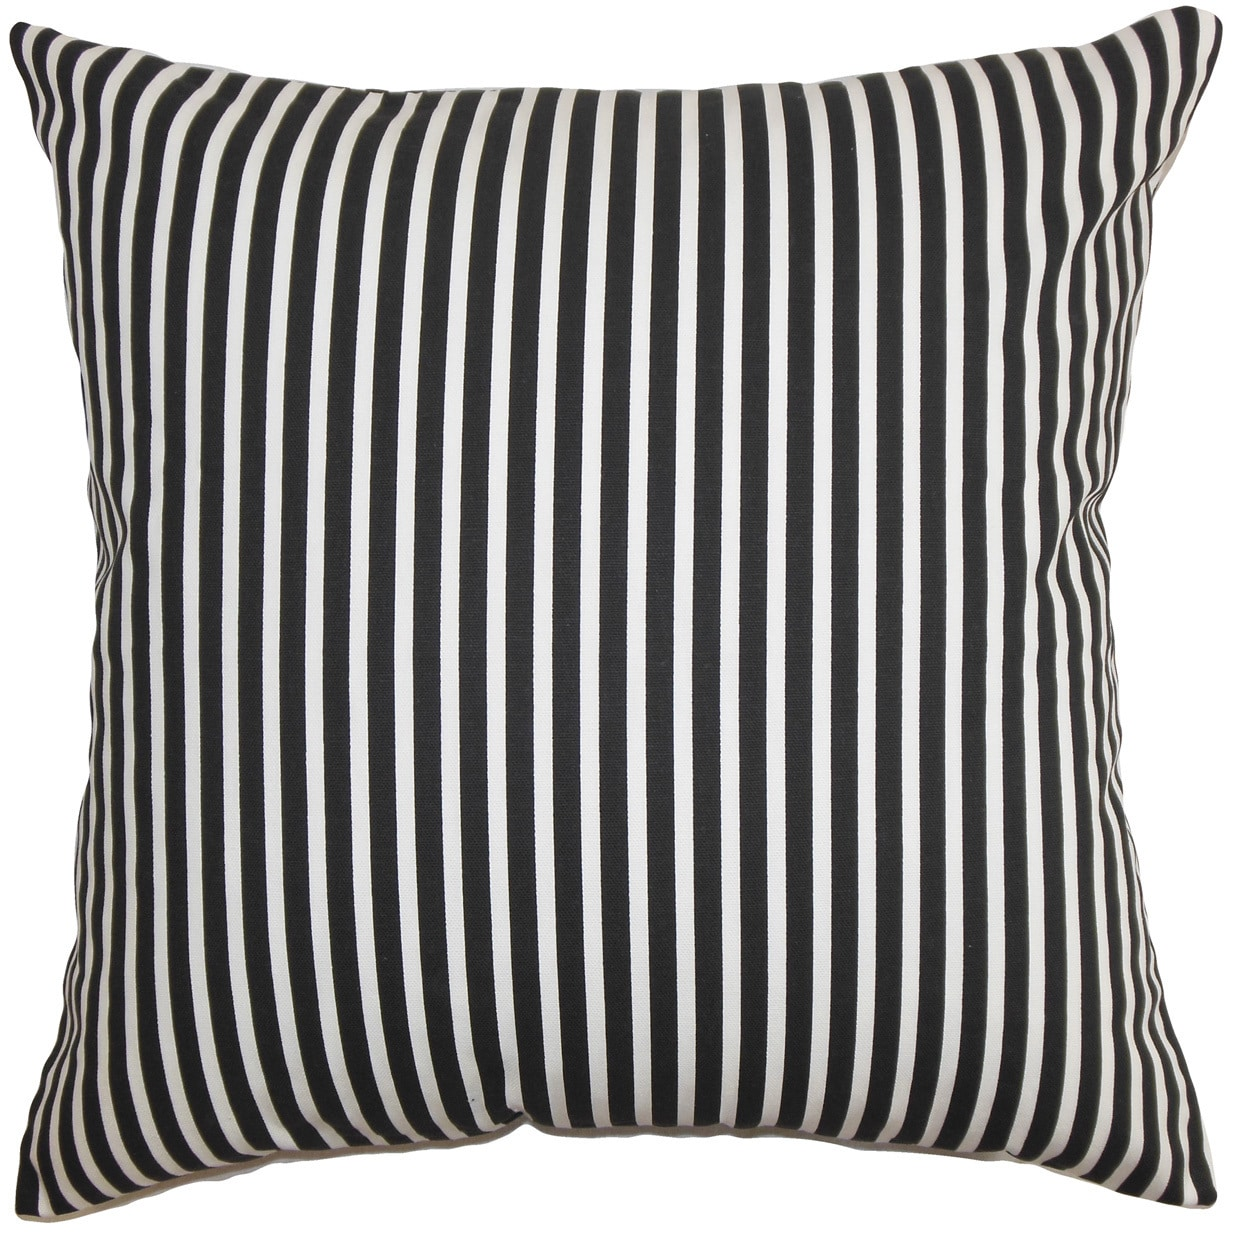 Elvy Stripes 24-inch  Feather Throw Pillow Black White (24 x 24)